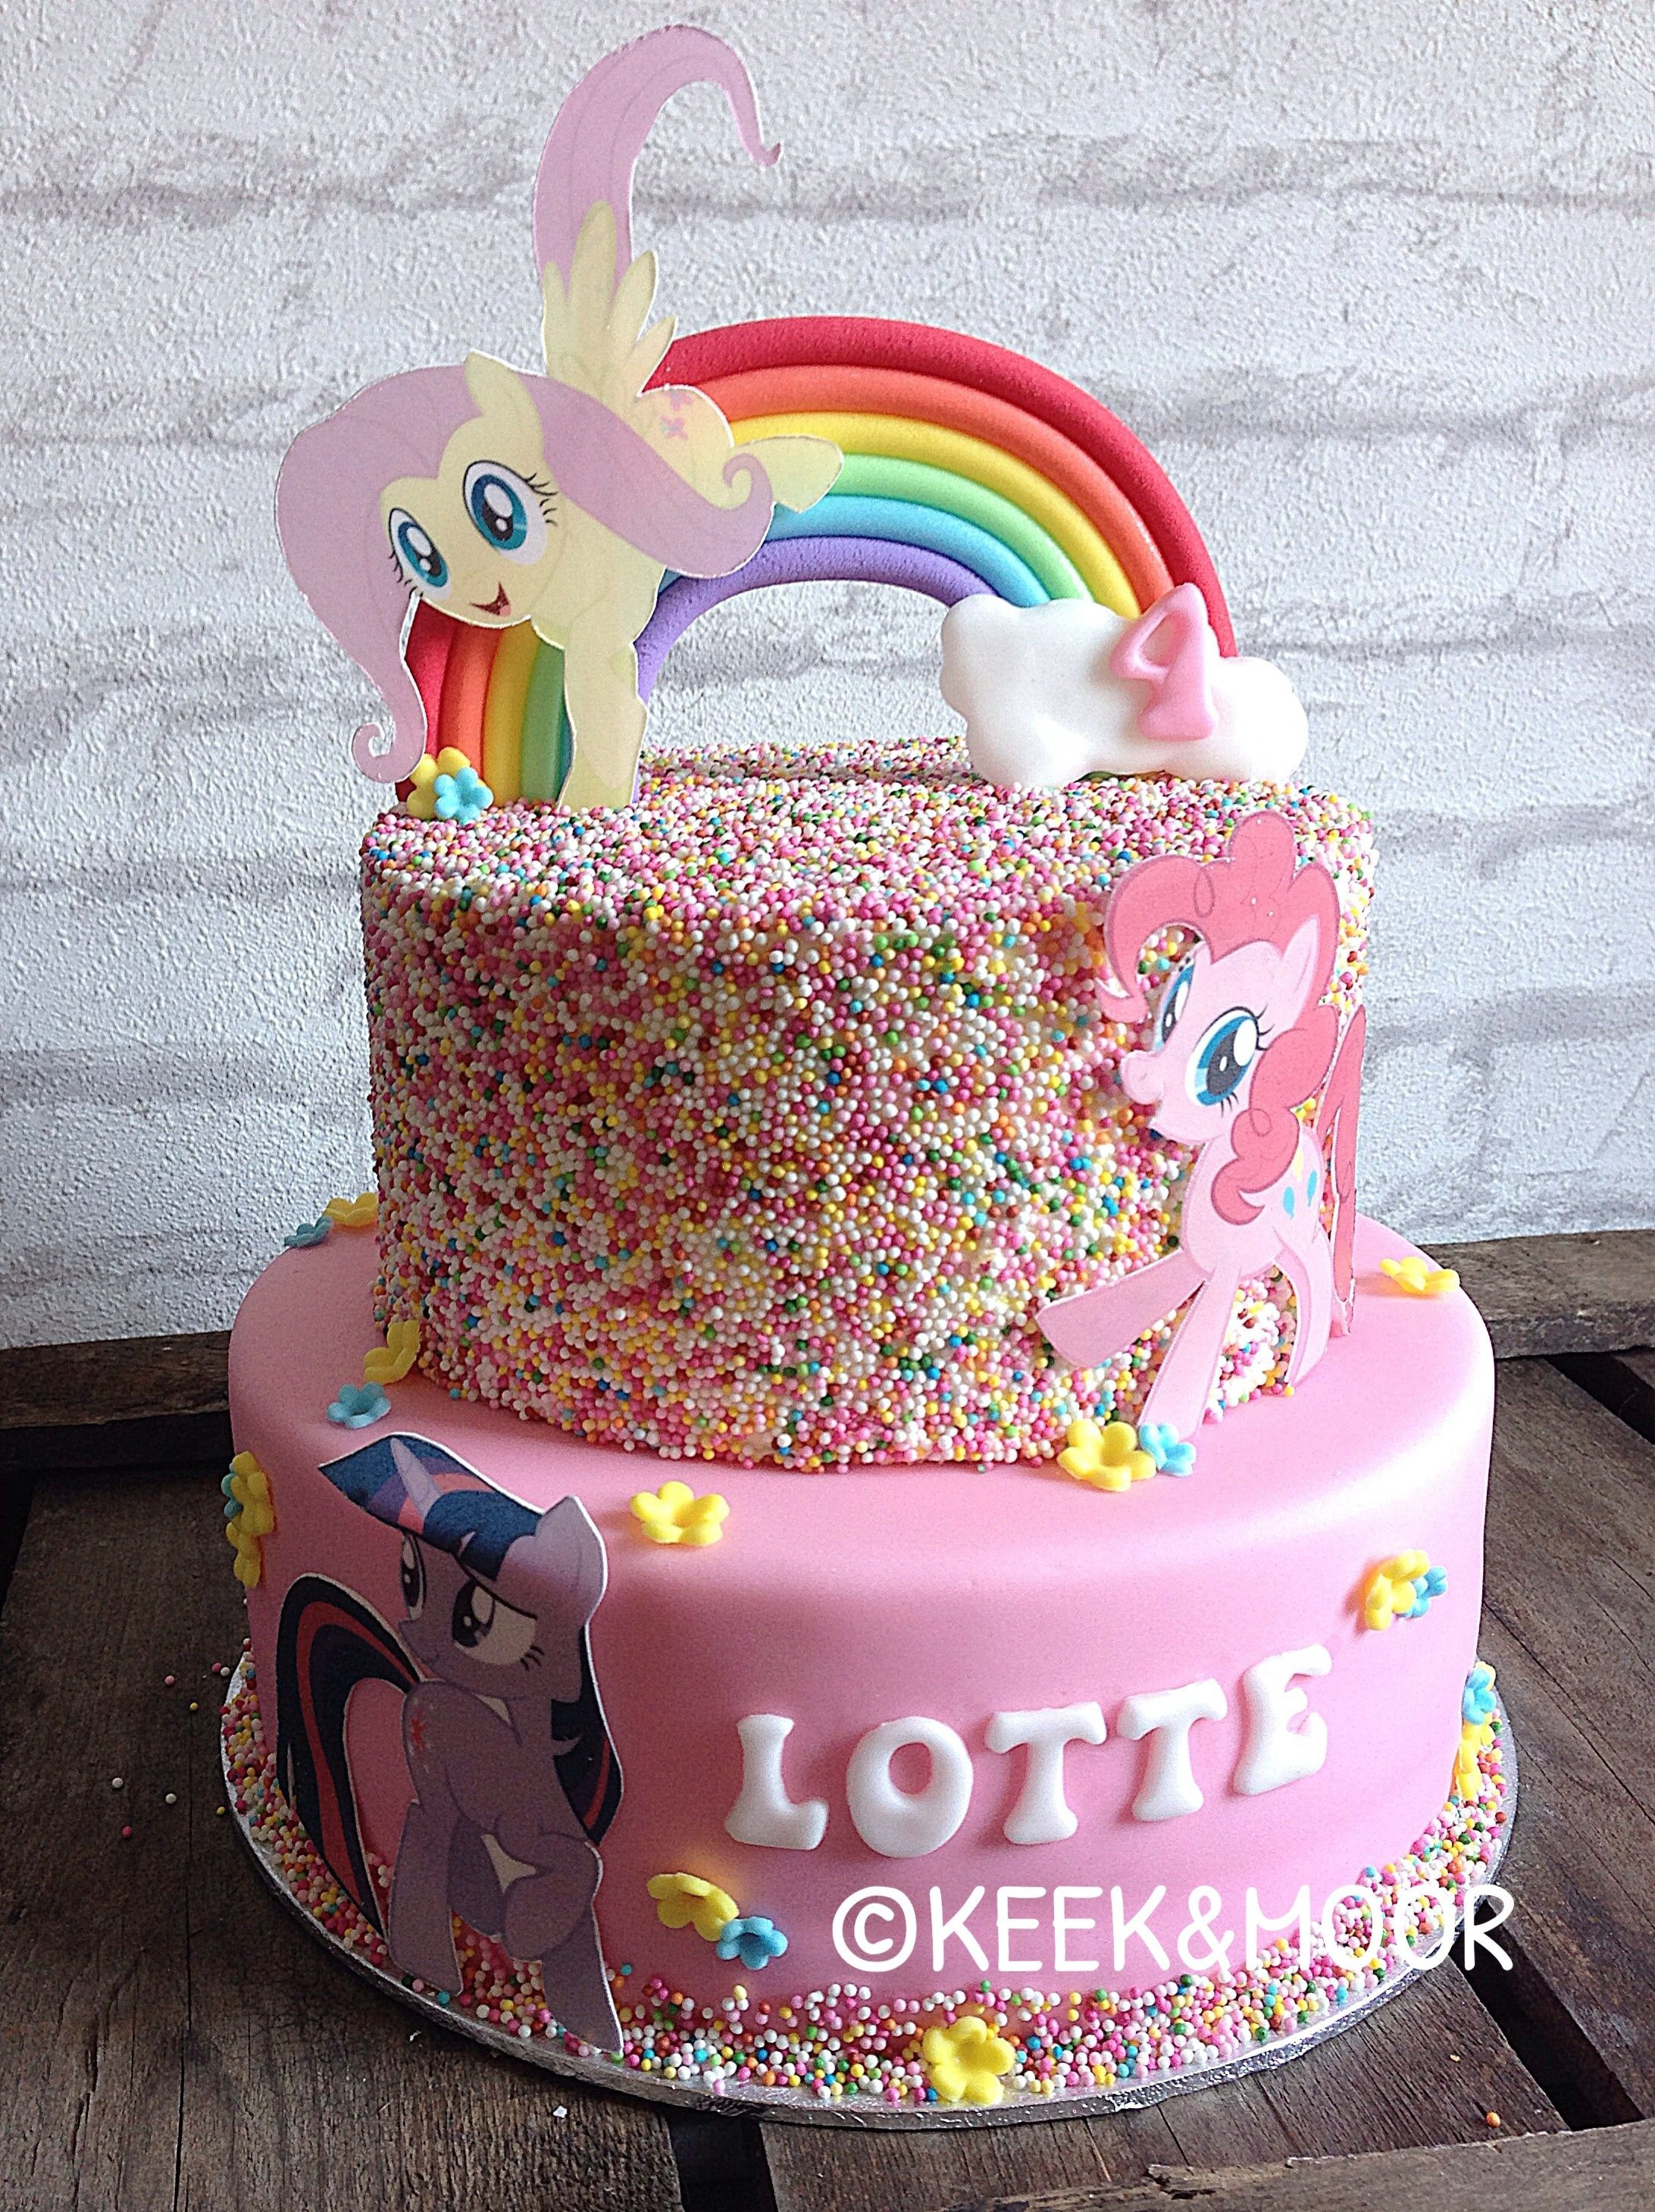 Best ideas about My Little Pony Birthday Cake . Save or Pin My Little Pony cake with sprinkles Now.